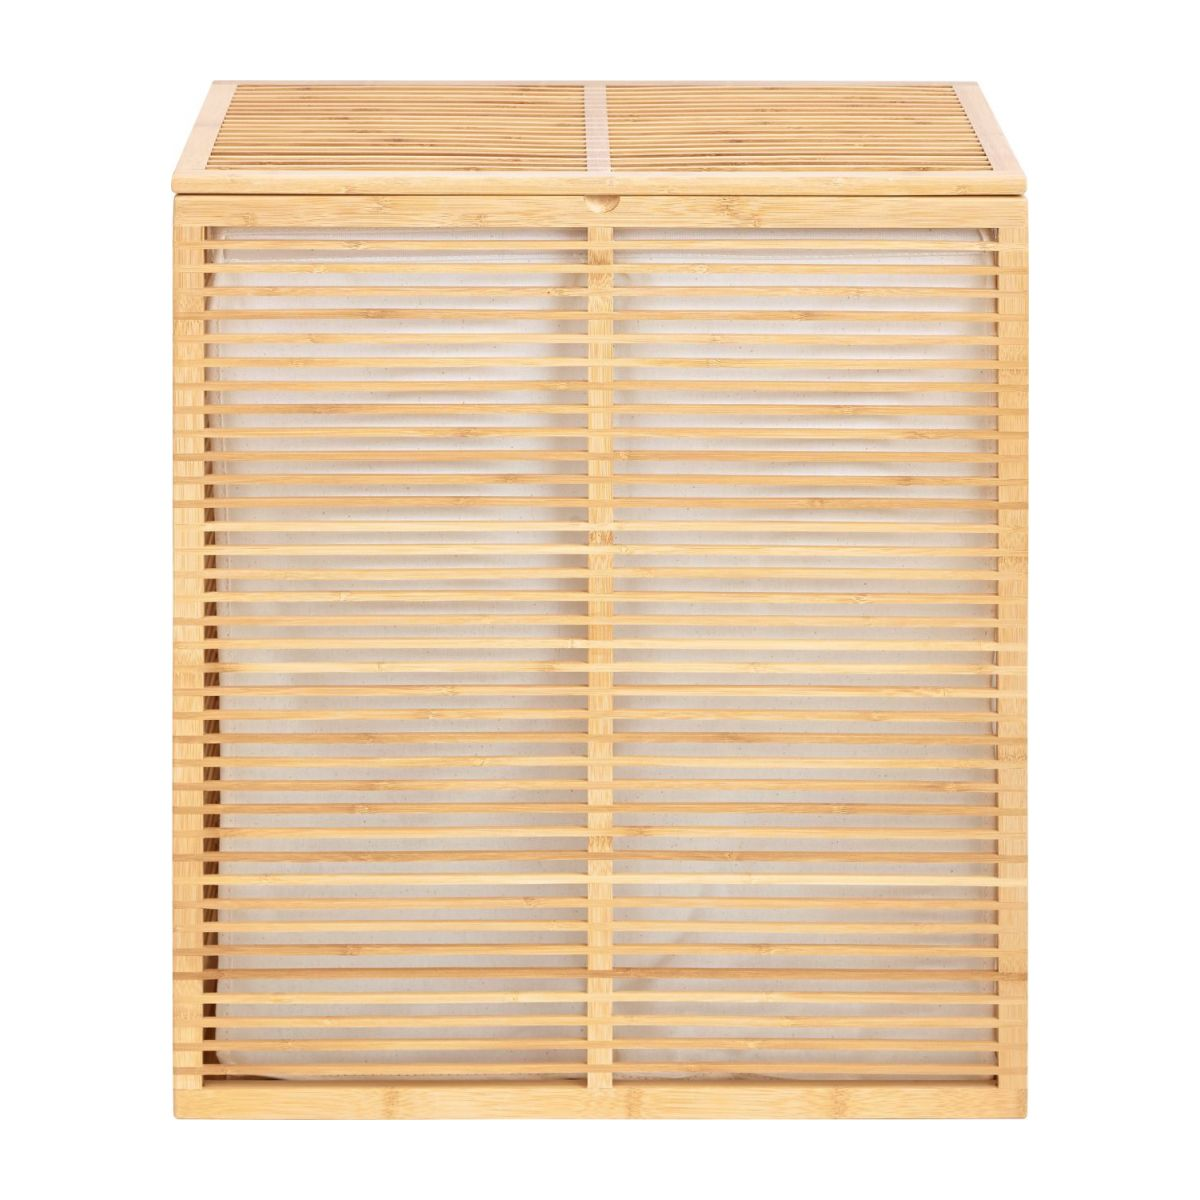 Laundry basket made of bamboo n°4